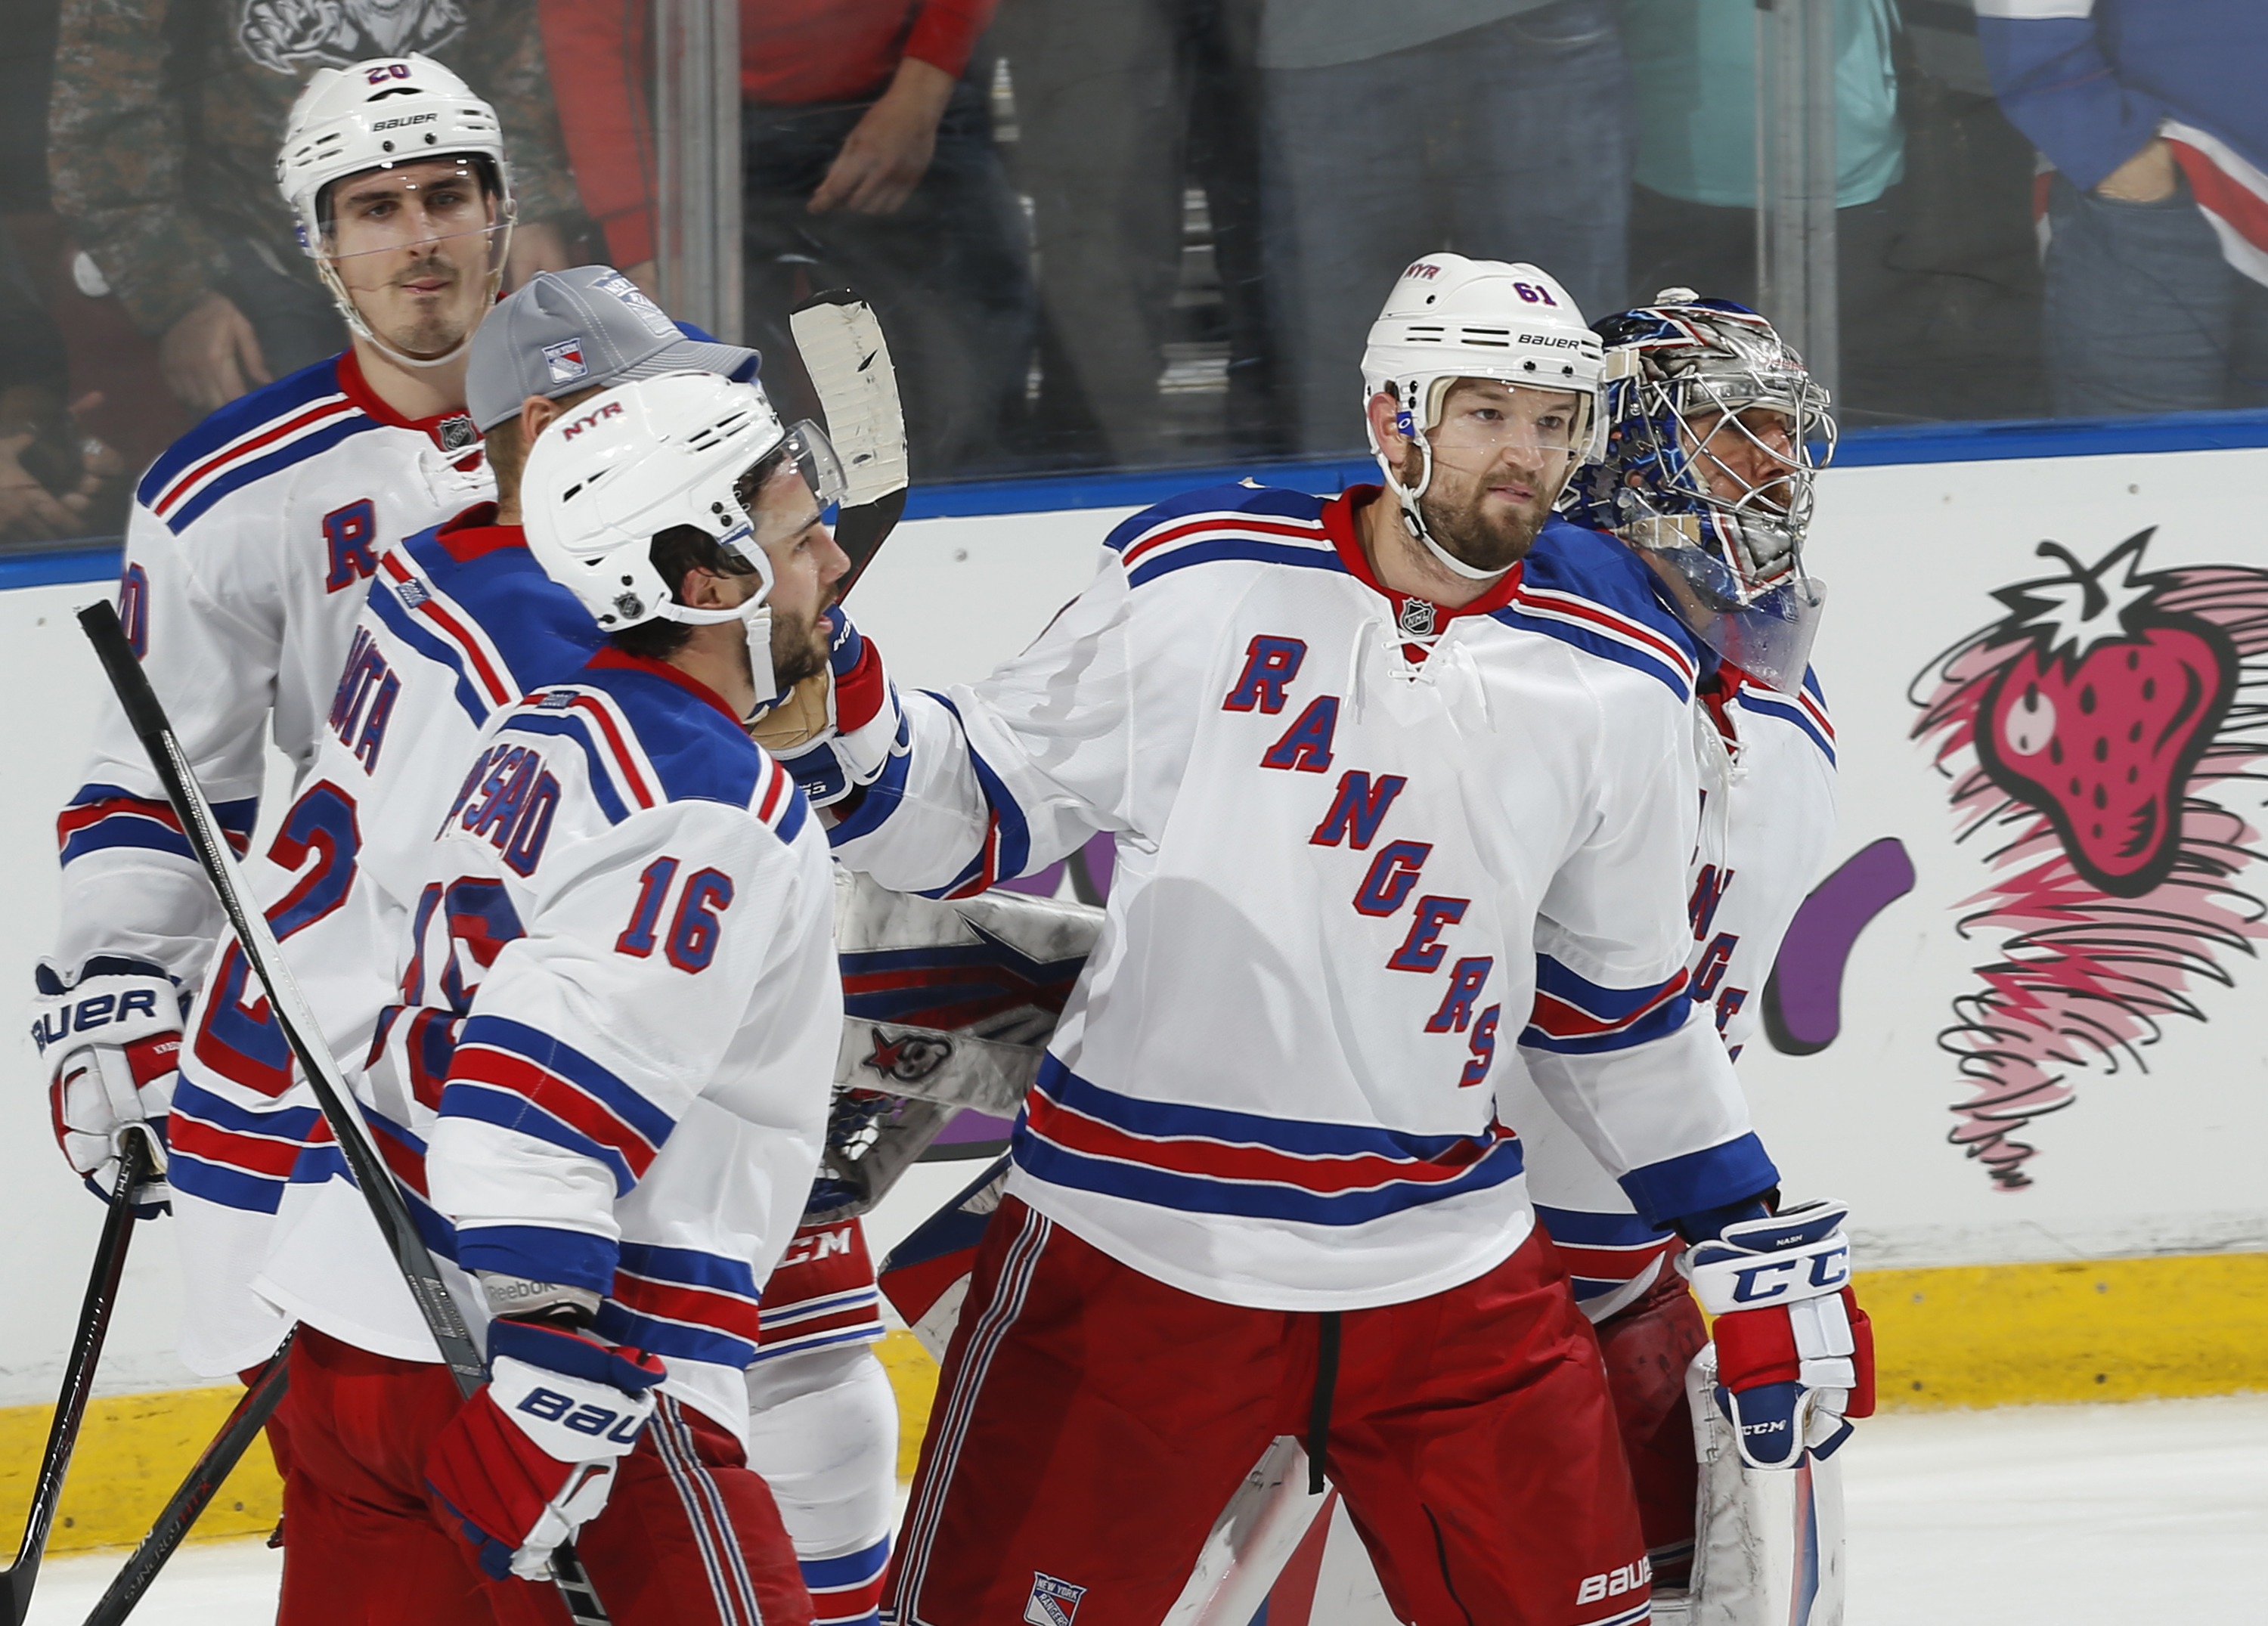 New York Rangers forward Rick Nash (61) skates off the ice with goaltender Henrik Lundqvist, right, and center Derick Brassard (16) after scoring the game-winning goal during the overtime  period of an NHL hockey game against the Florida Panthers, Saturda